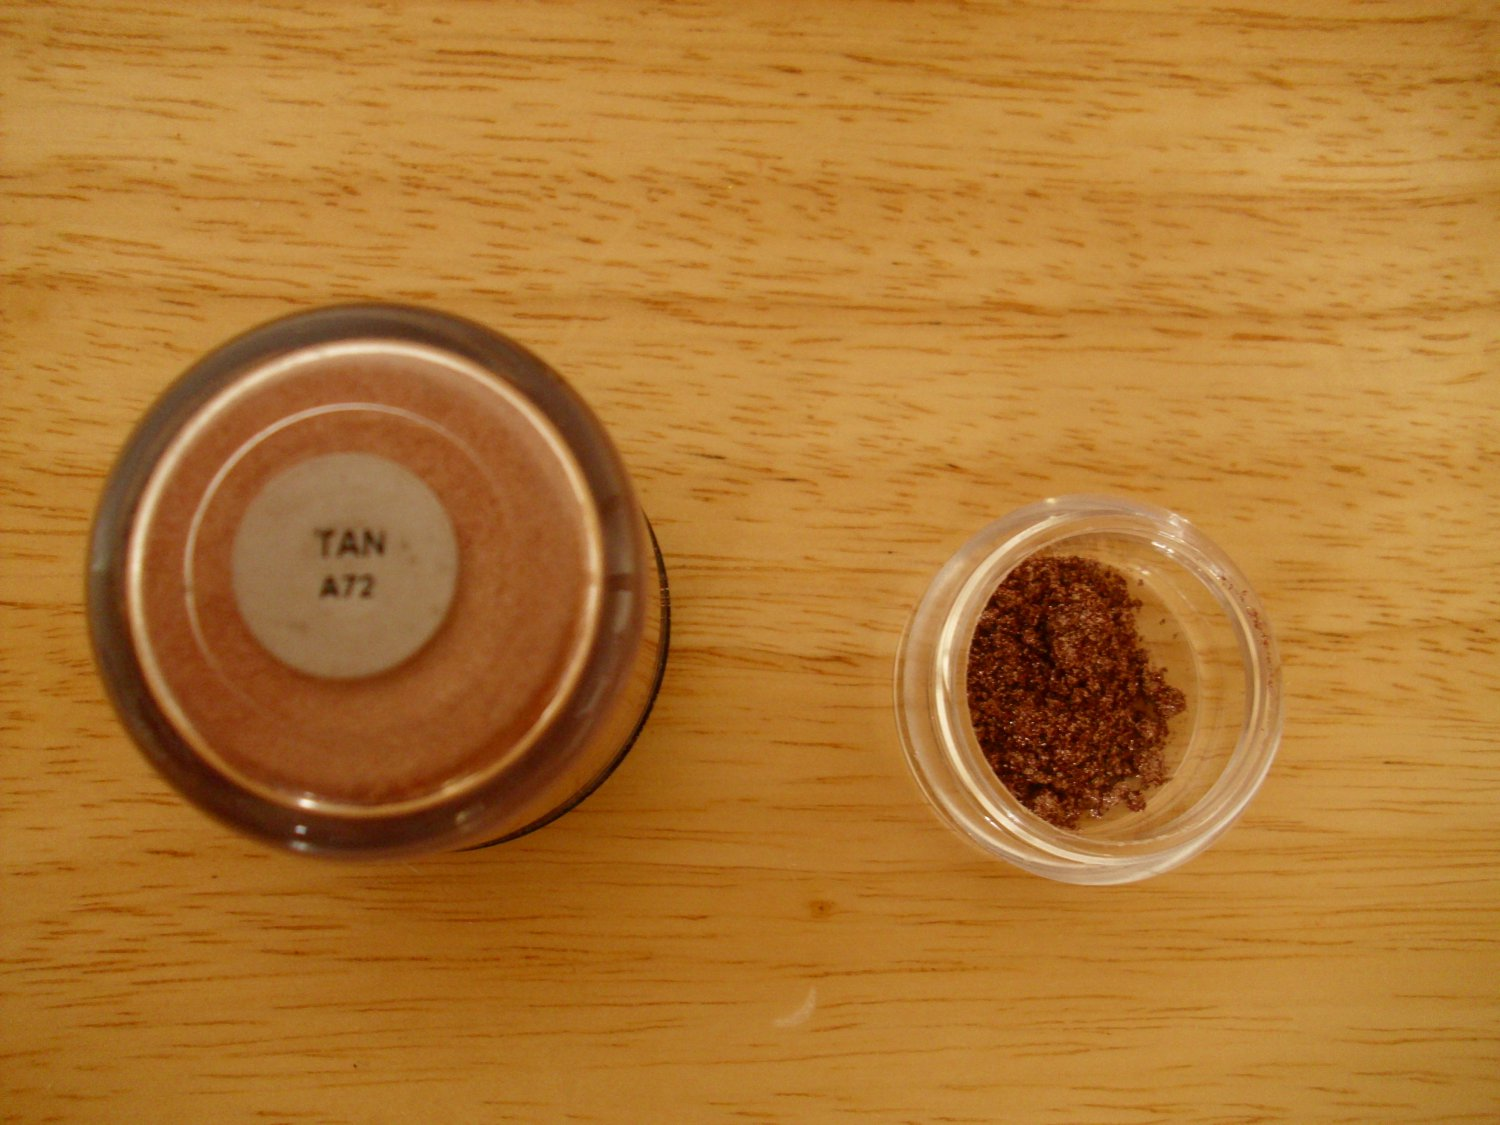 MAC Pigment Sample Tan